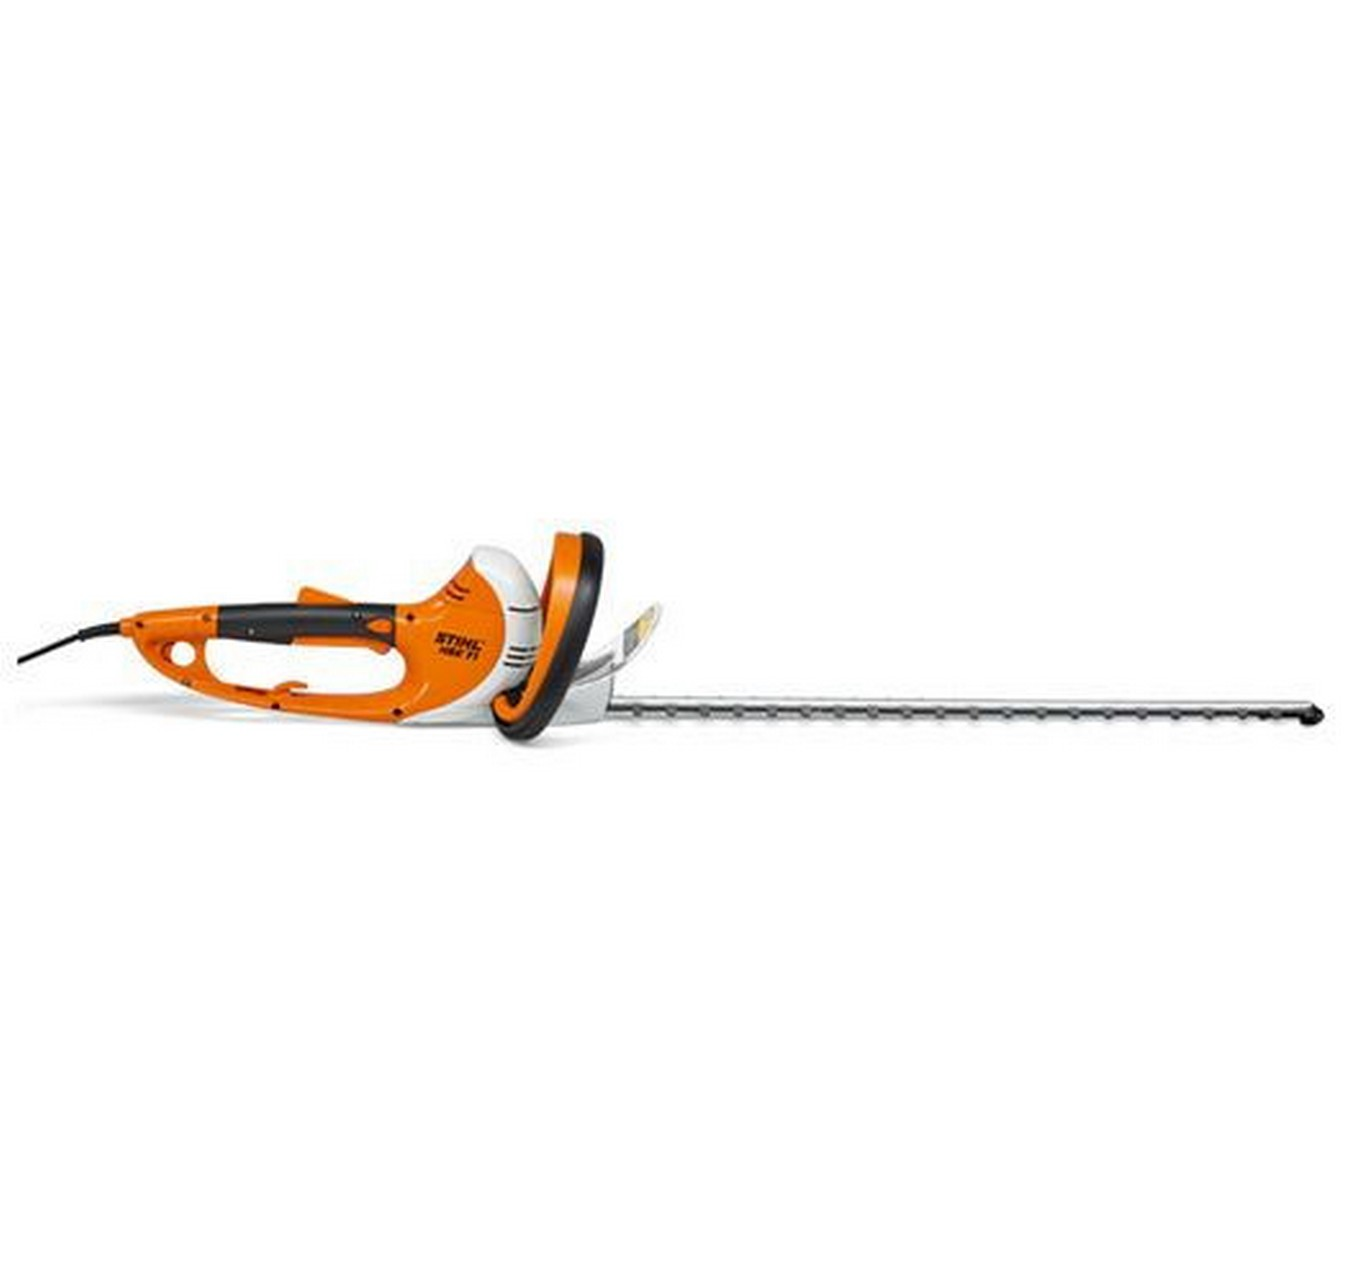 HSE 71 Hedge Trimmer 24